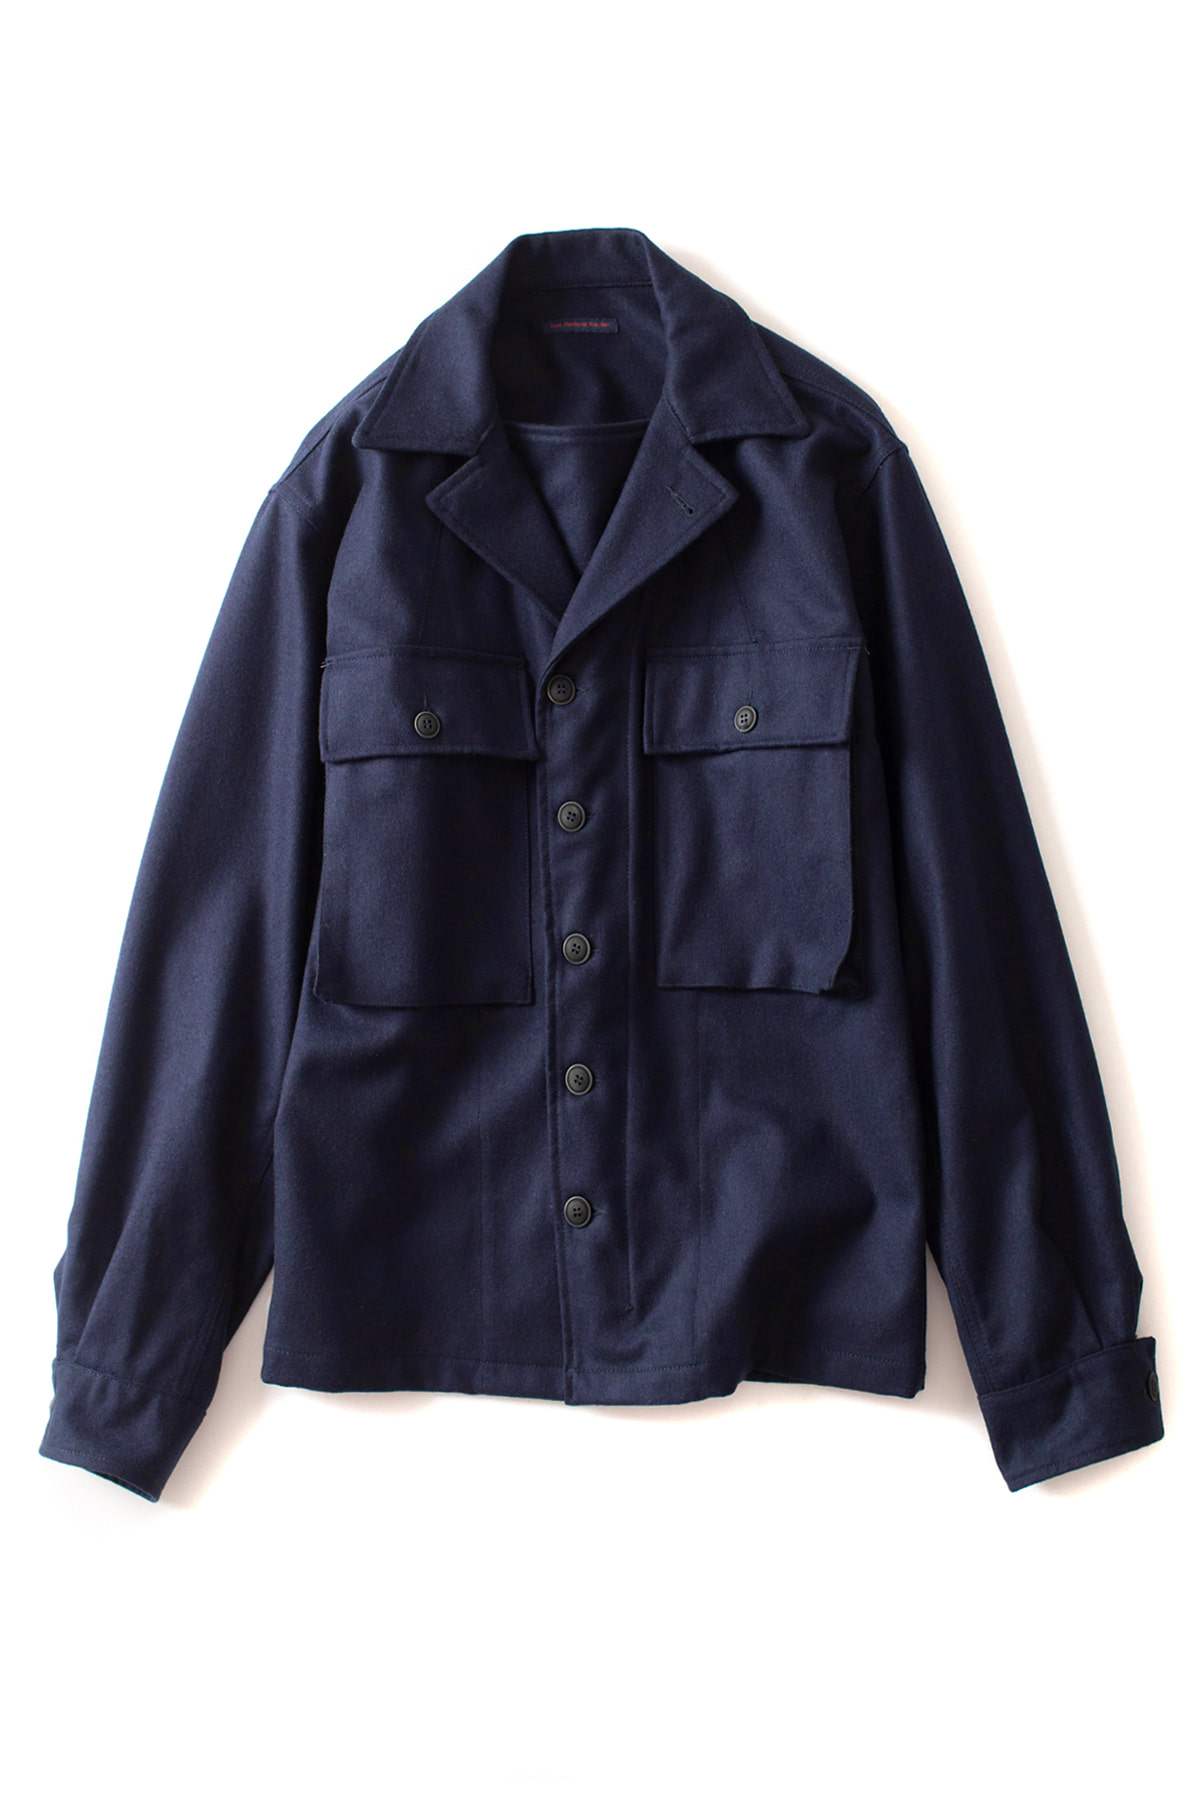 East Harbour Surplus : Derek Over Shirt (Blue)